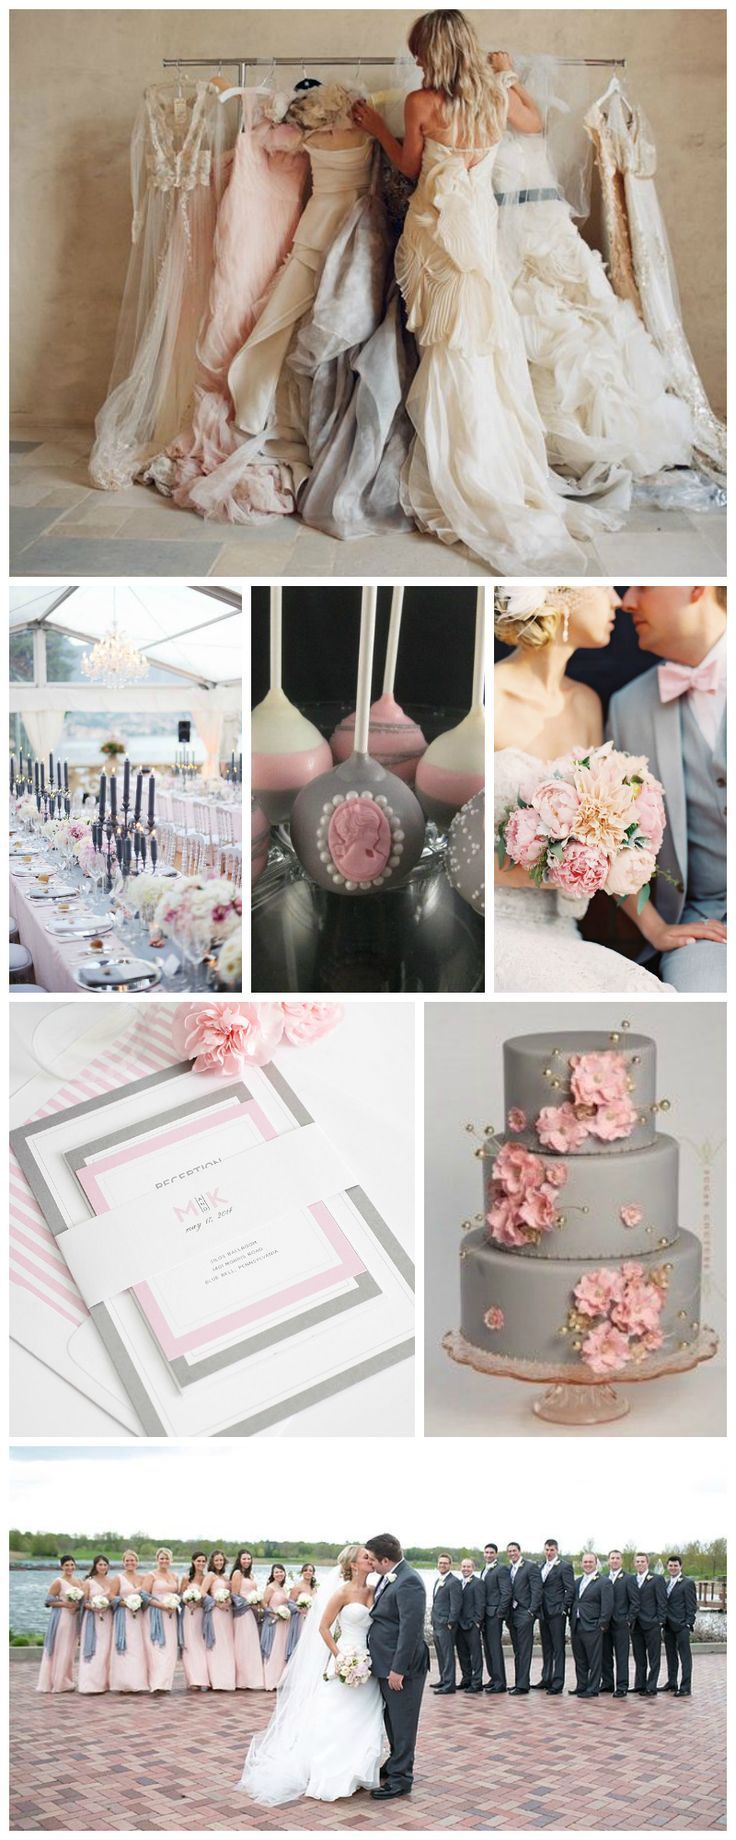 Pink, gray and blush wedding inspiration #pinkwedding #blush #gray #pinkandgray #blush wedding #weddinginspiration